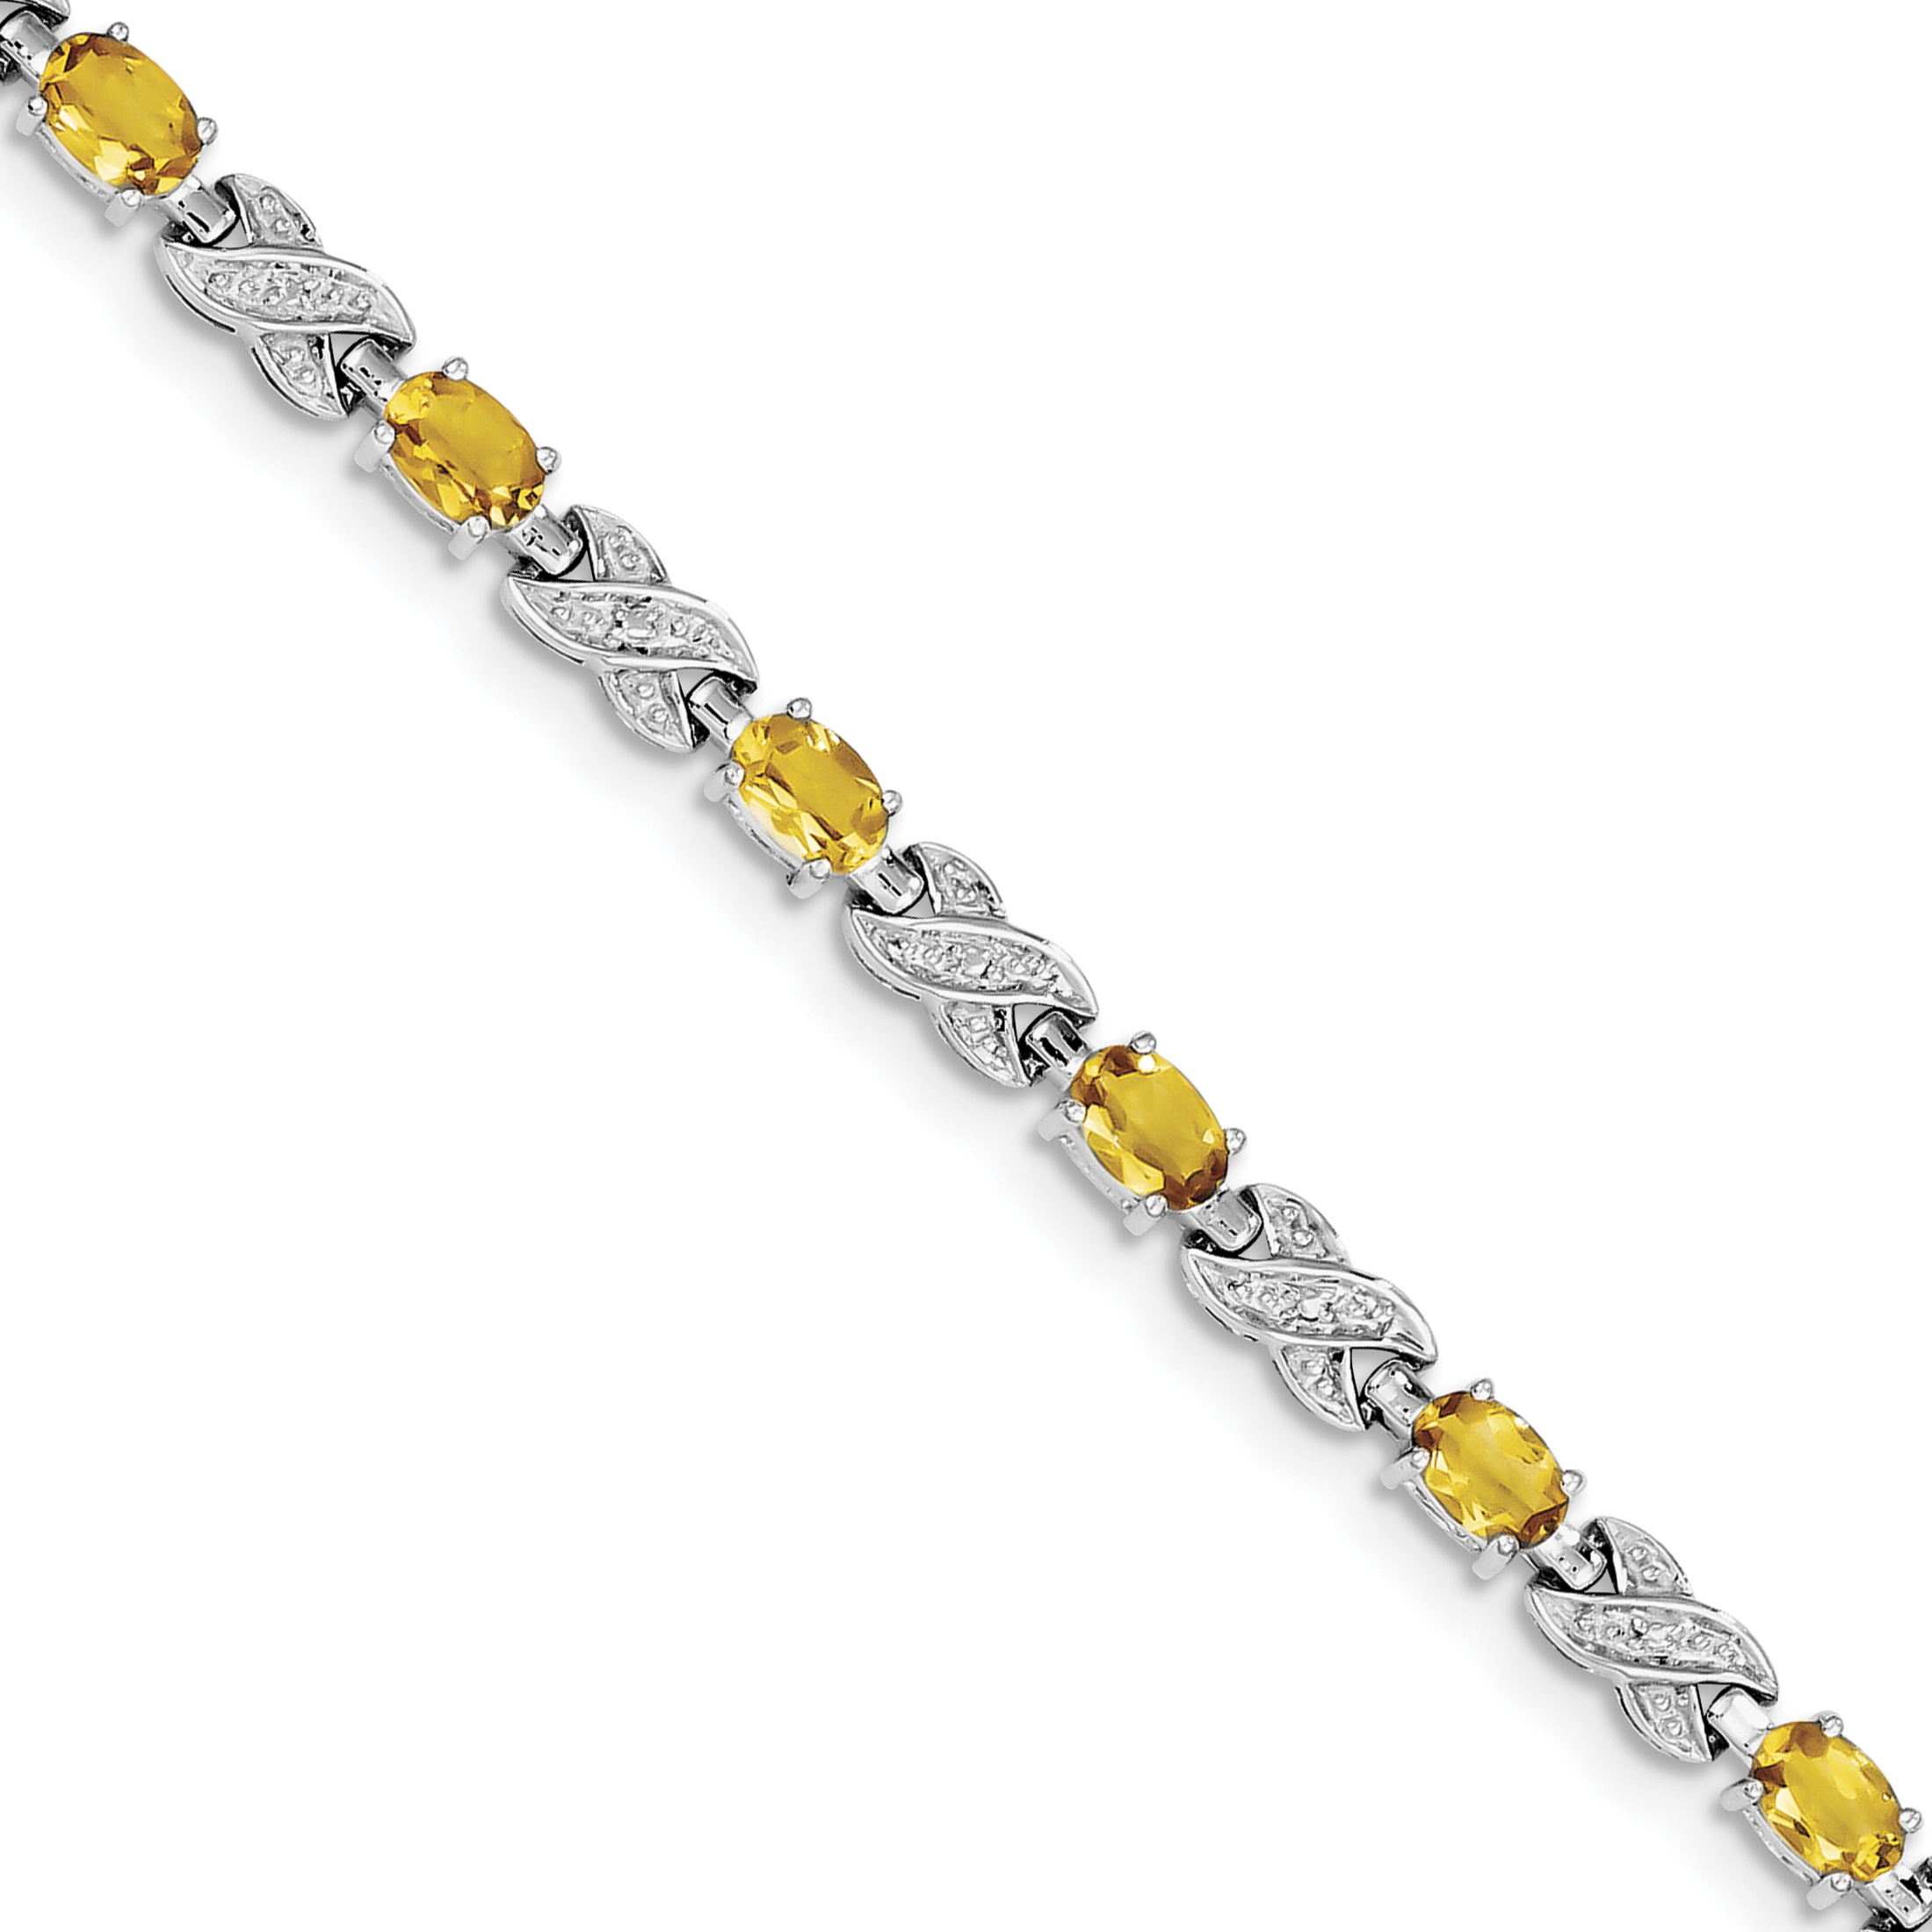 925 Sterling Silver Rhodium-plated Citrine Bracelet by